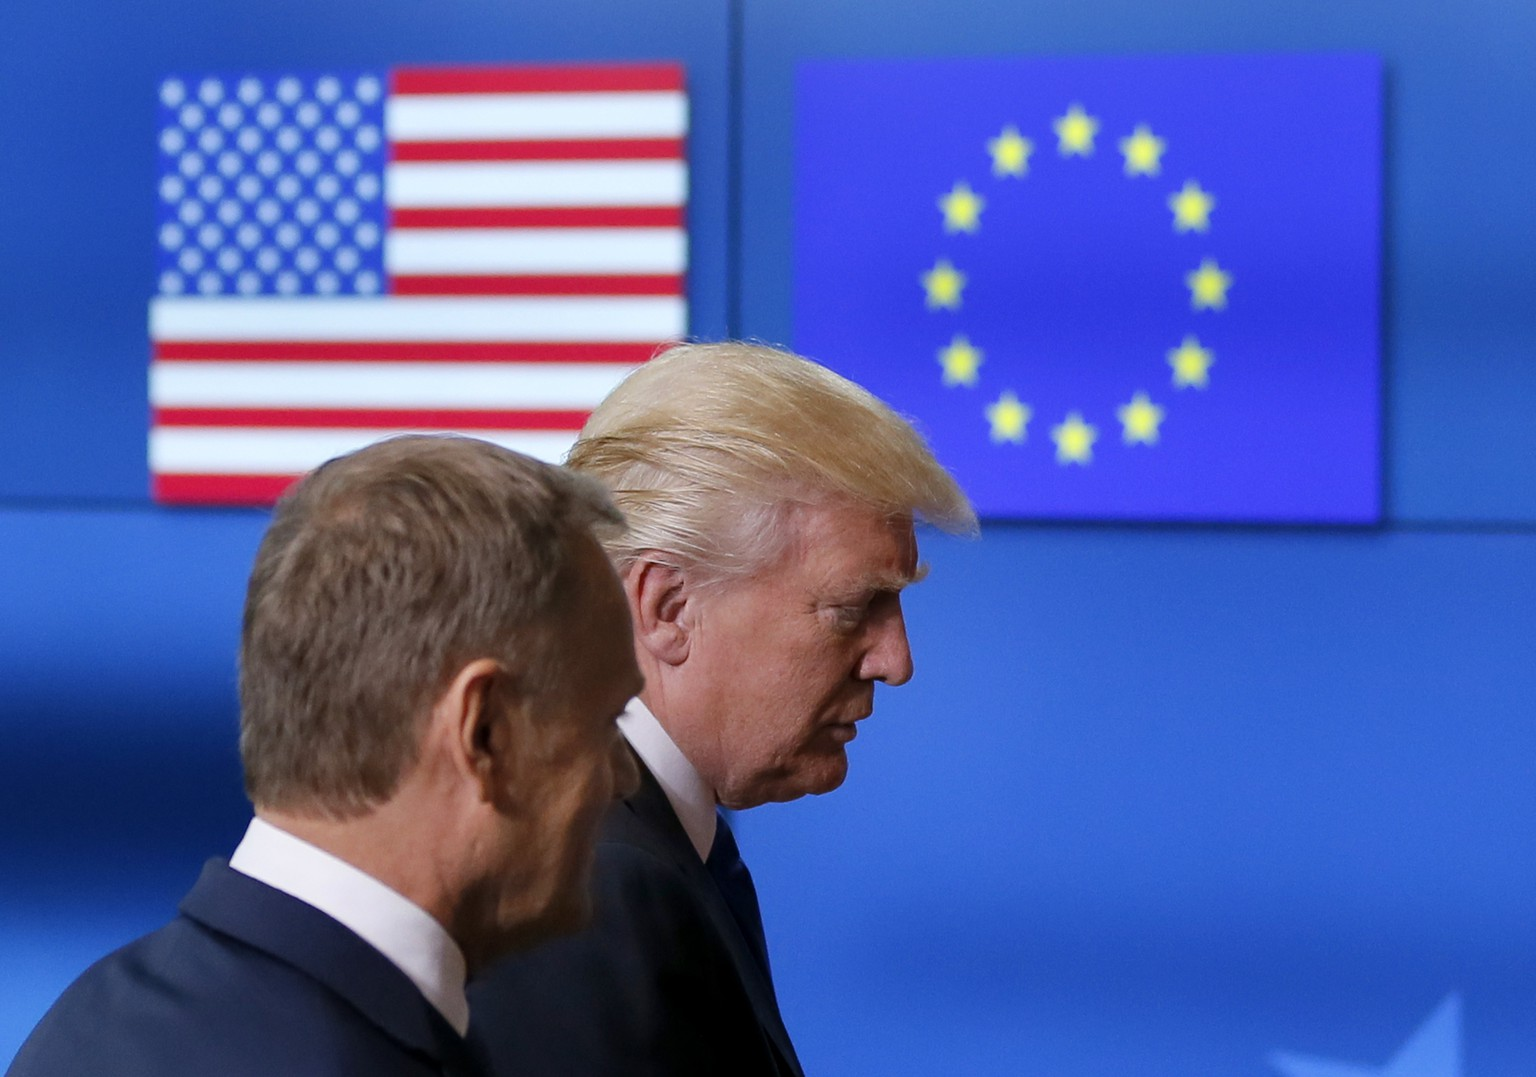 epa05988291 US President Donald J. Trump (R) talks with President of the European Council Donald Tusk (L), ahead of a meeting with EU leaders at the European Council, in Brussels, Belgium, 25 May 2017. Trump is in Belgium to attend a North Atlantic Treaty Organization (NATO) Summit and to meet EU leaders.  EPA/ROBERT GHEMENT